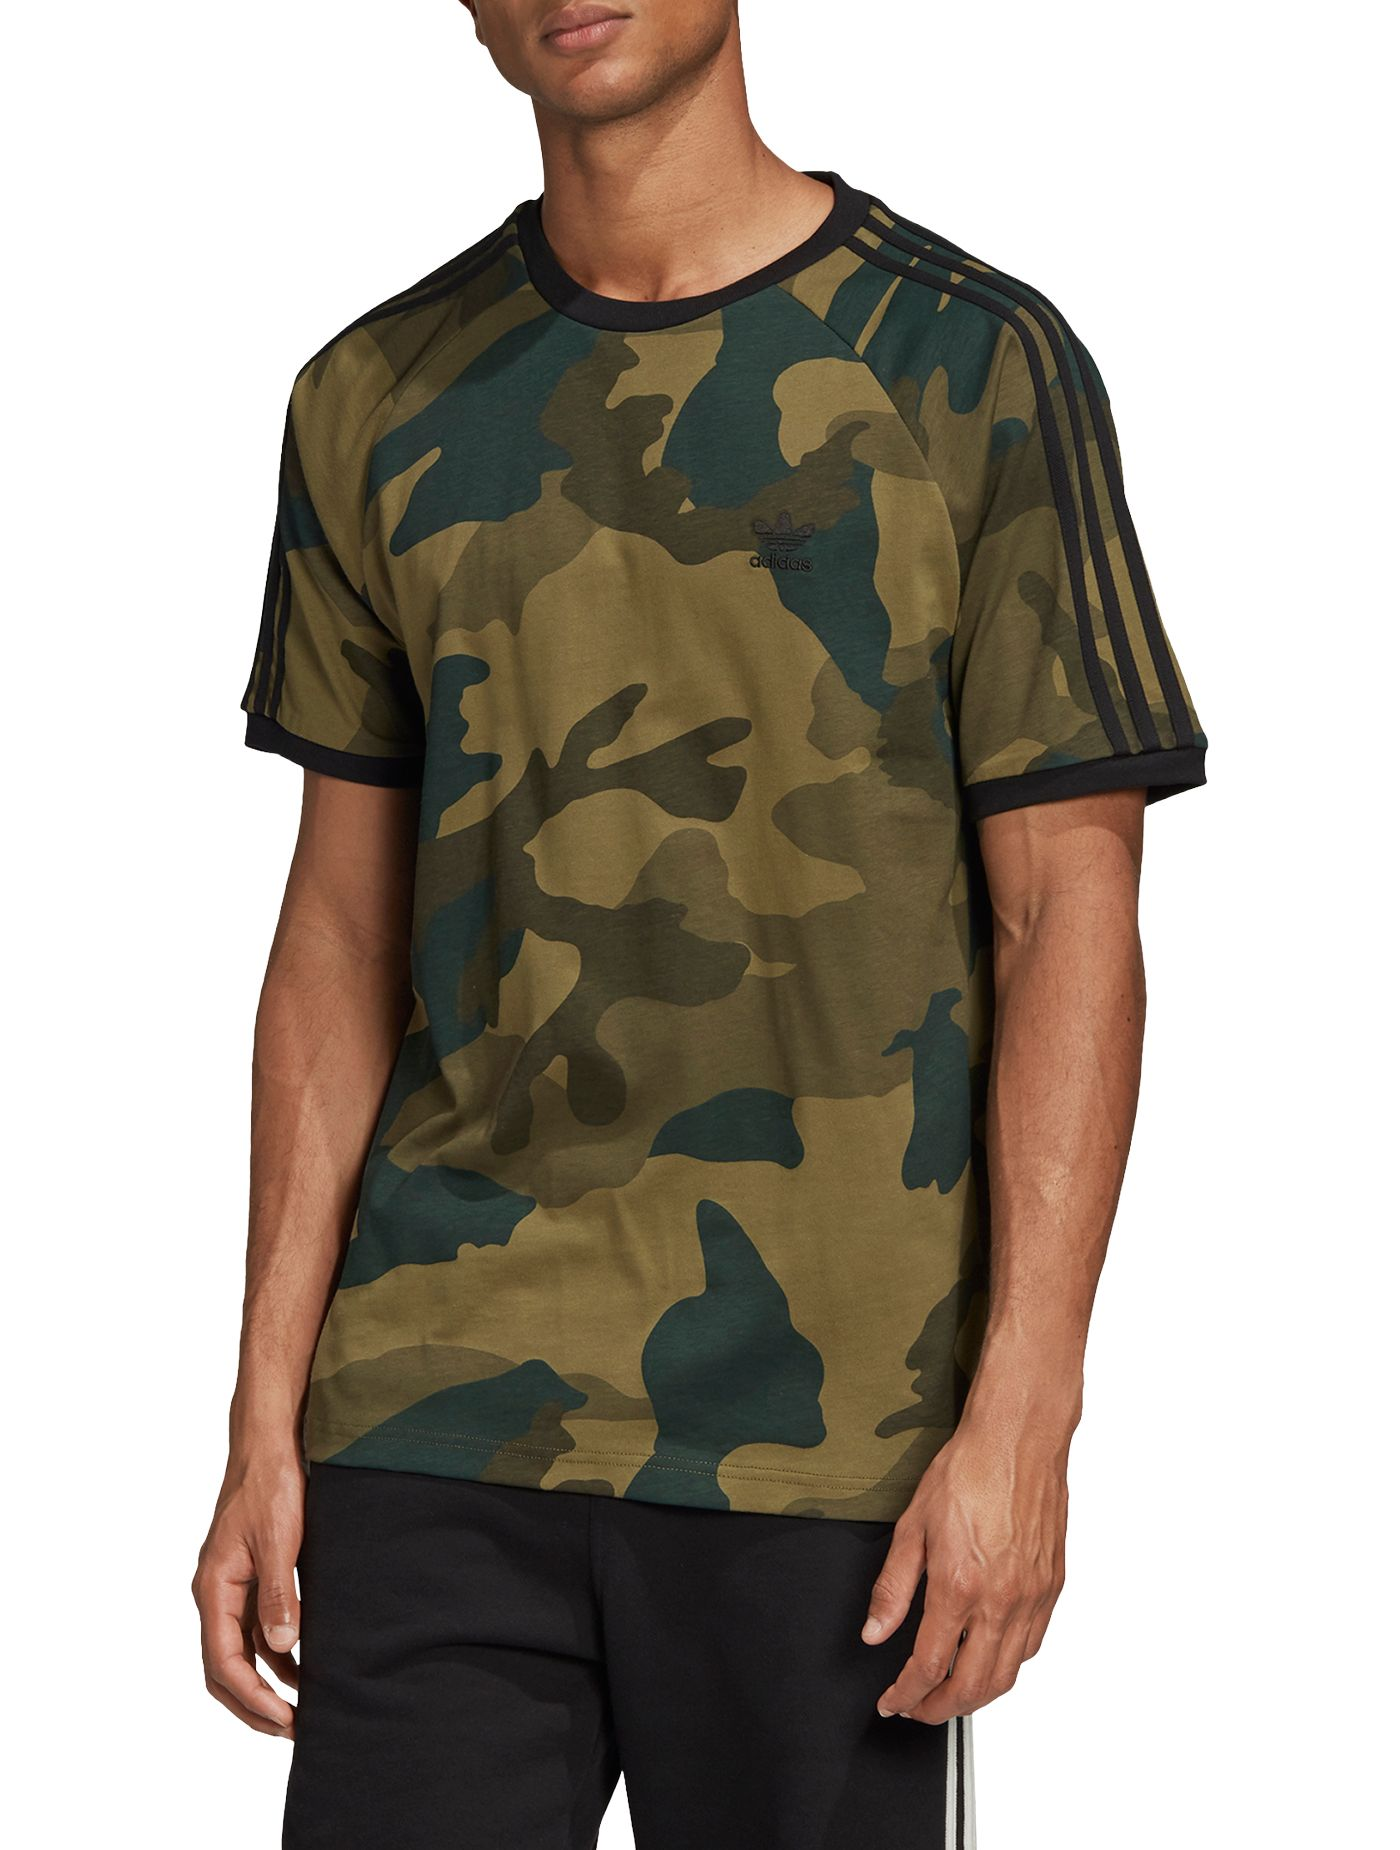 adidas Originals Men's Camo Cali T-Shirt